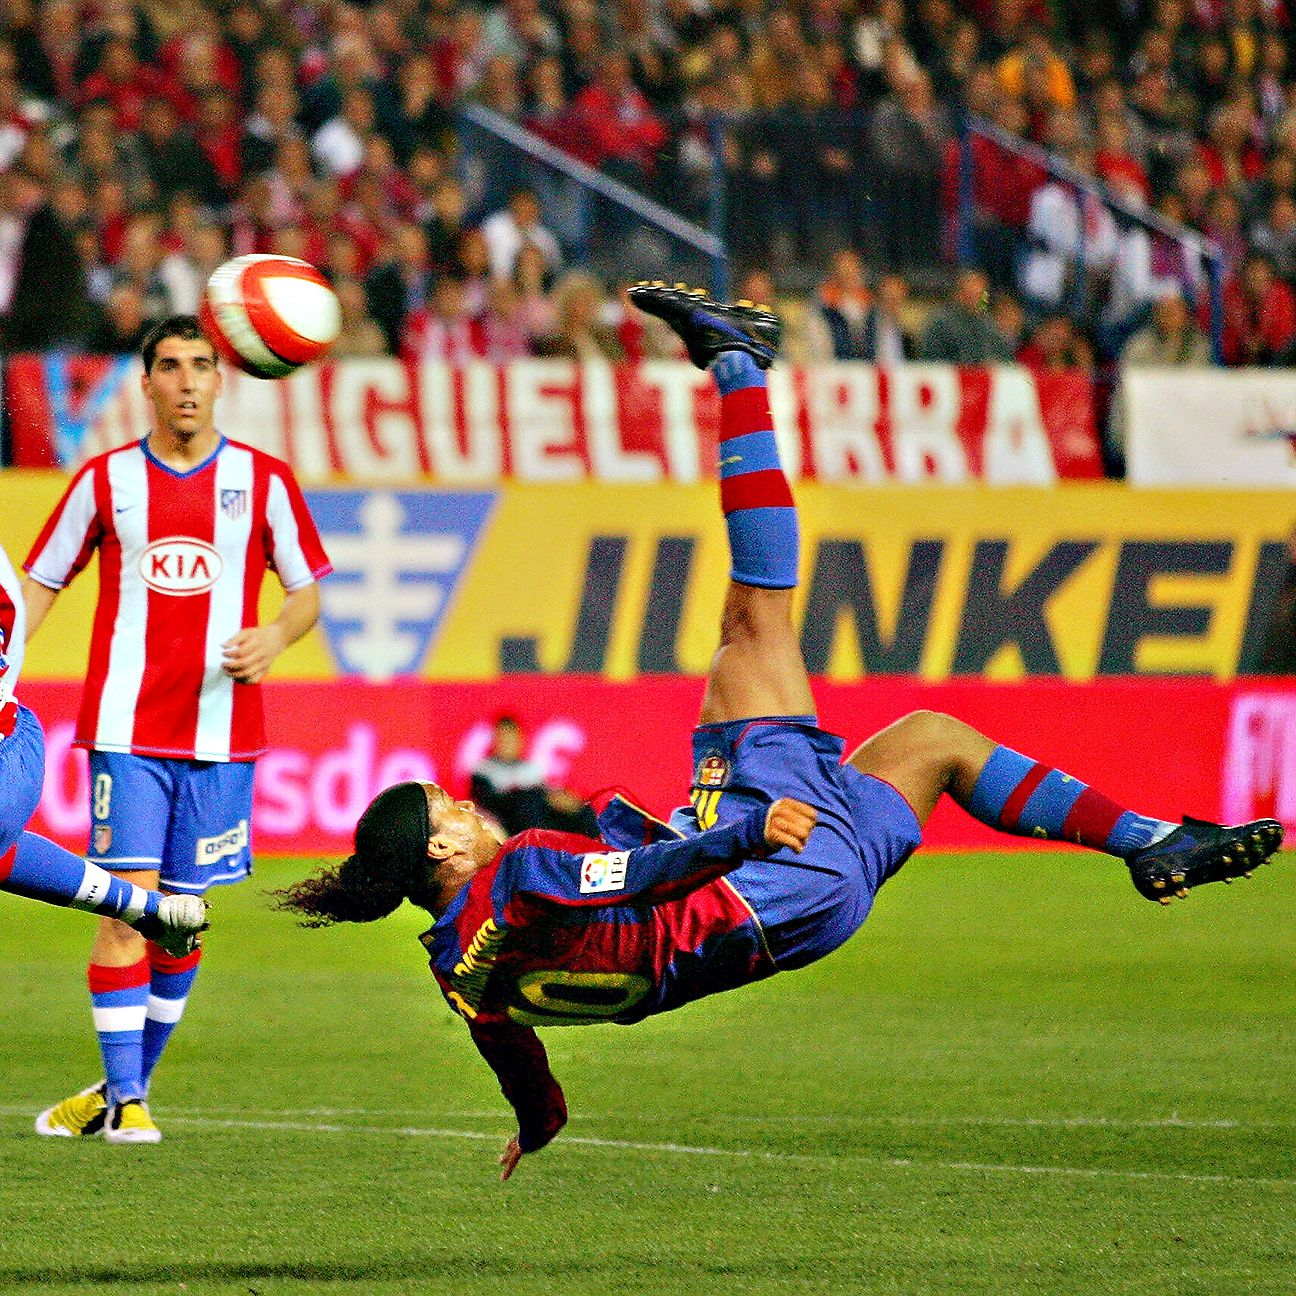 Ronaldinho has always produced the spectacular wherever he has been, like in this bicycle kick with Barcelona in a 2008 match versus Atletico Madrid.